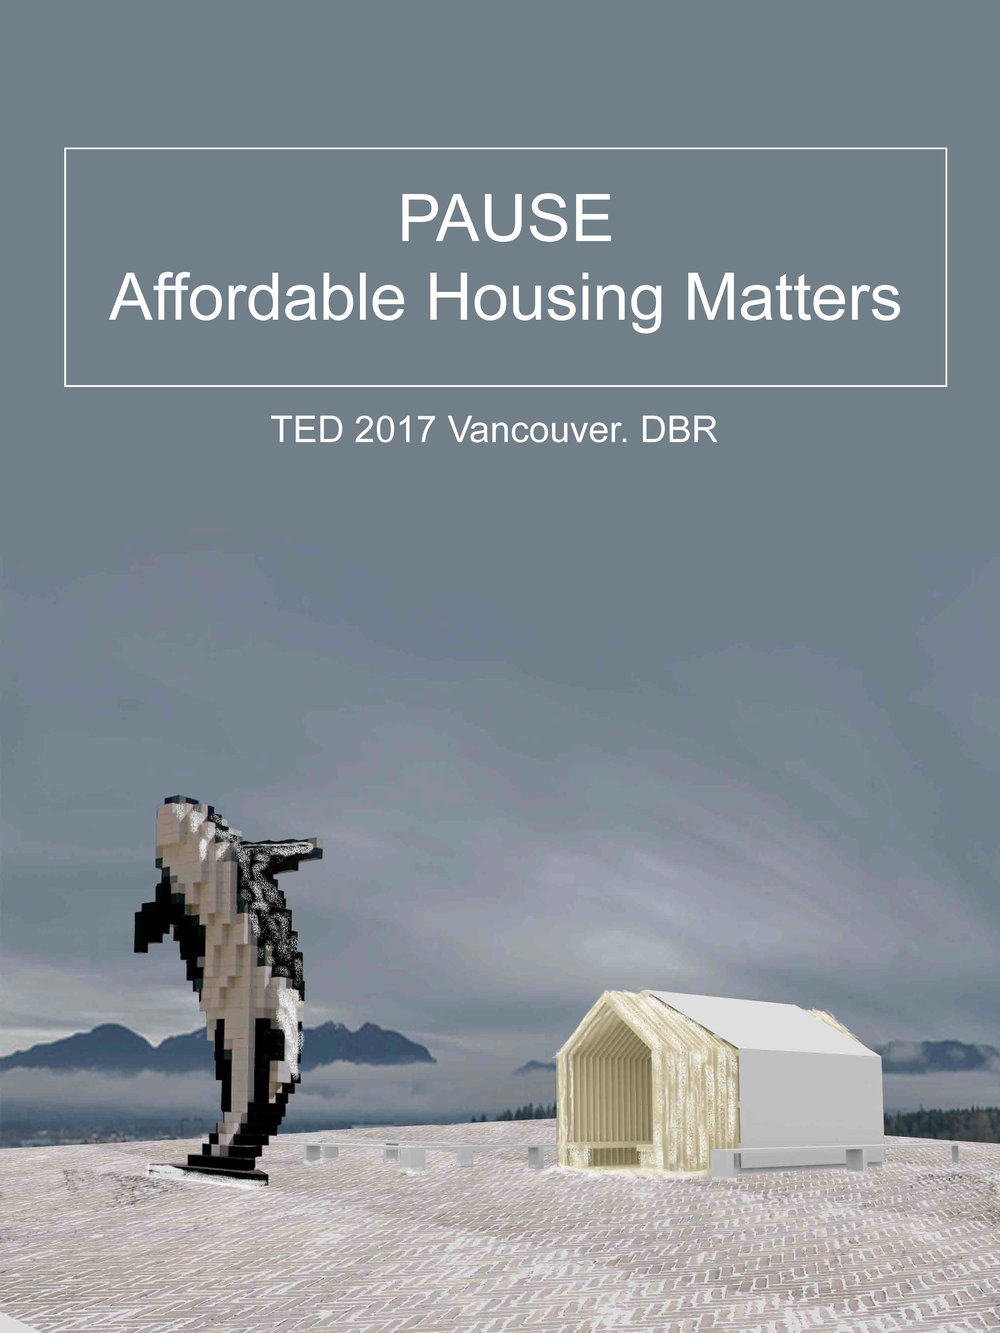 AFFORDABLE HOUSING MATTERS_1.jpg